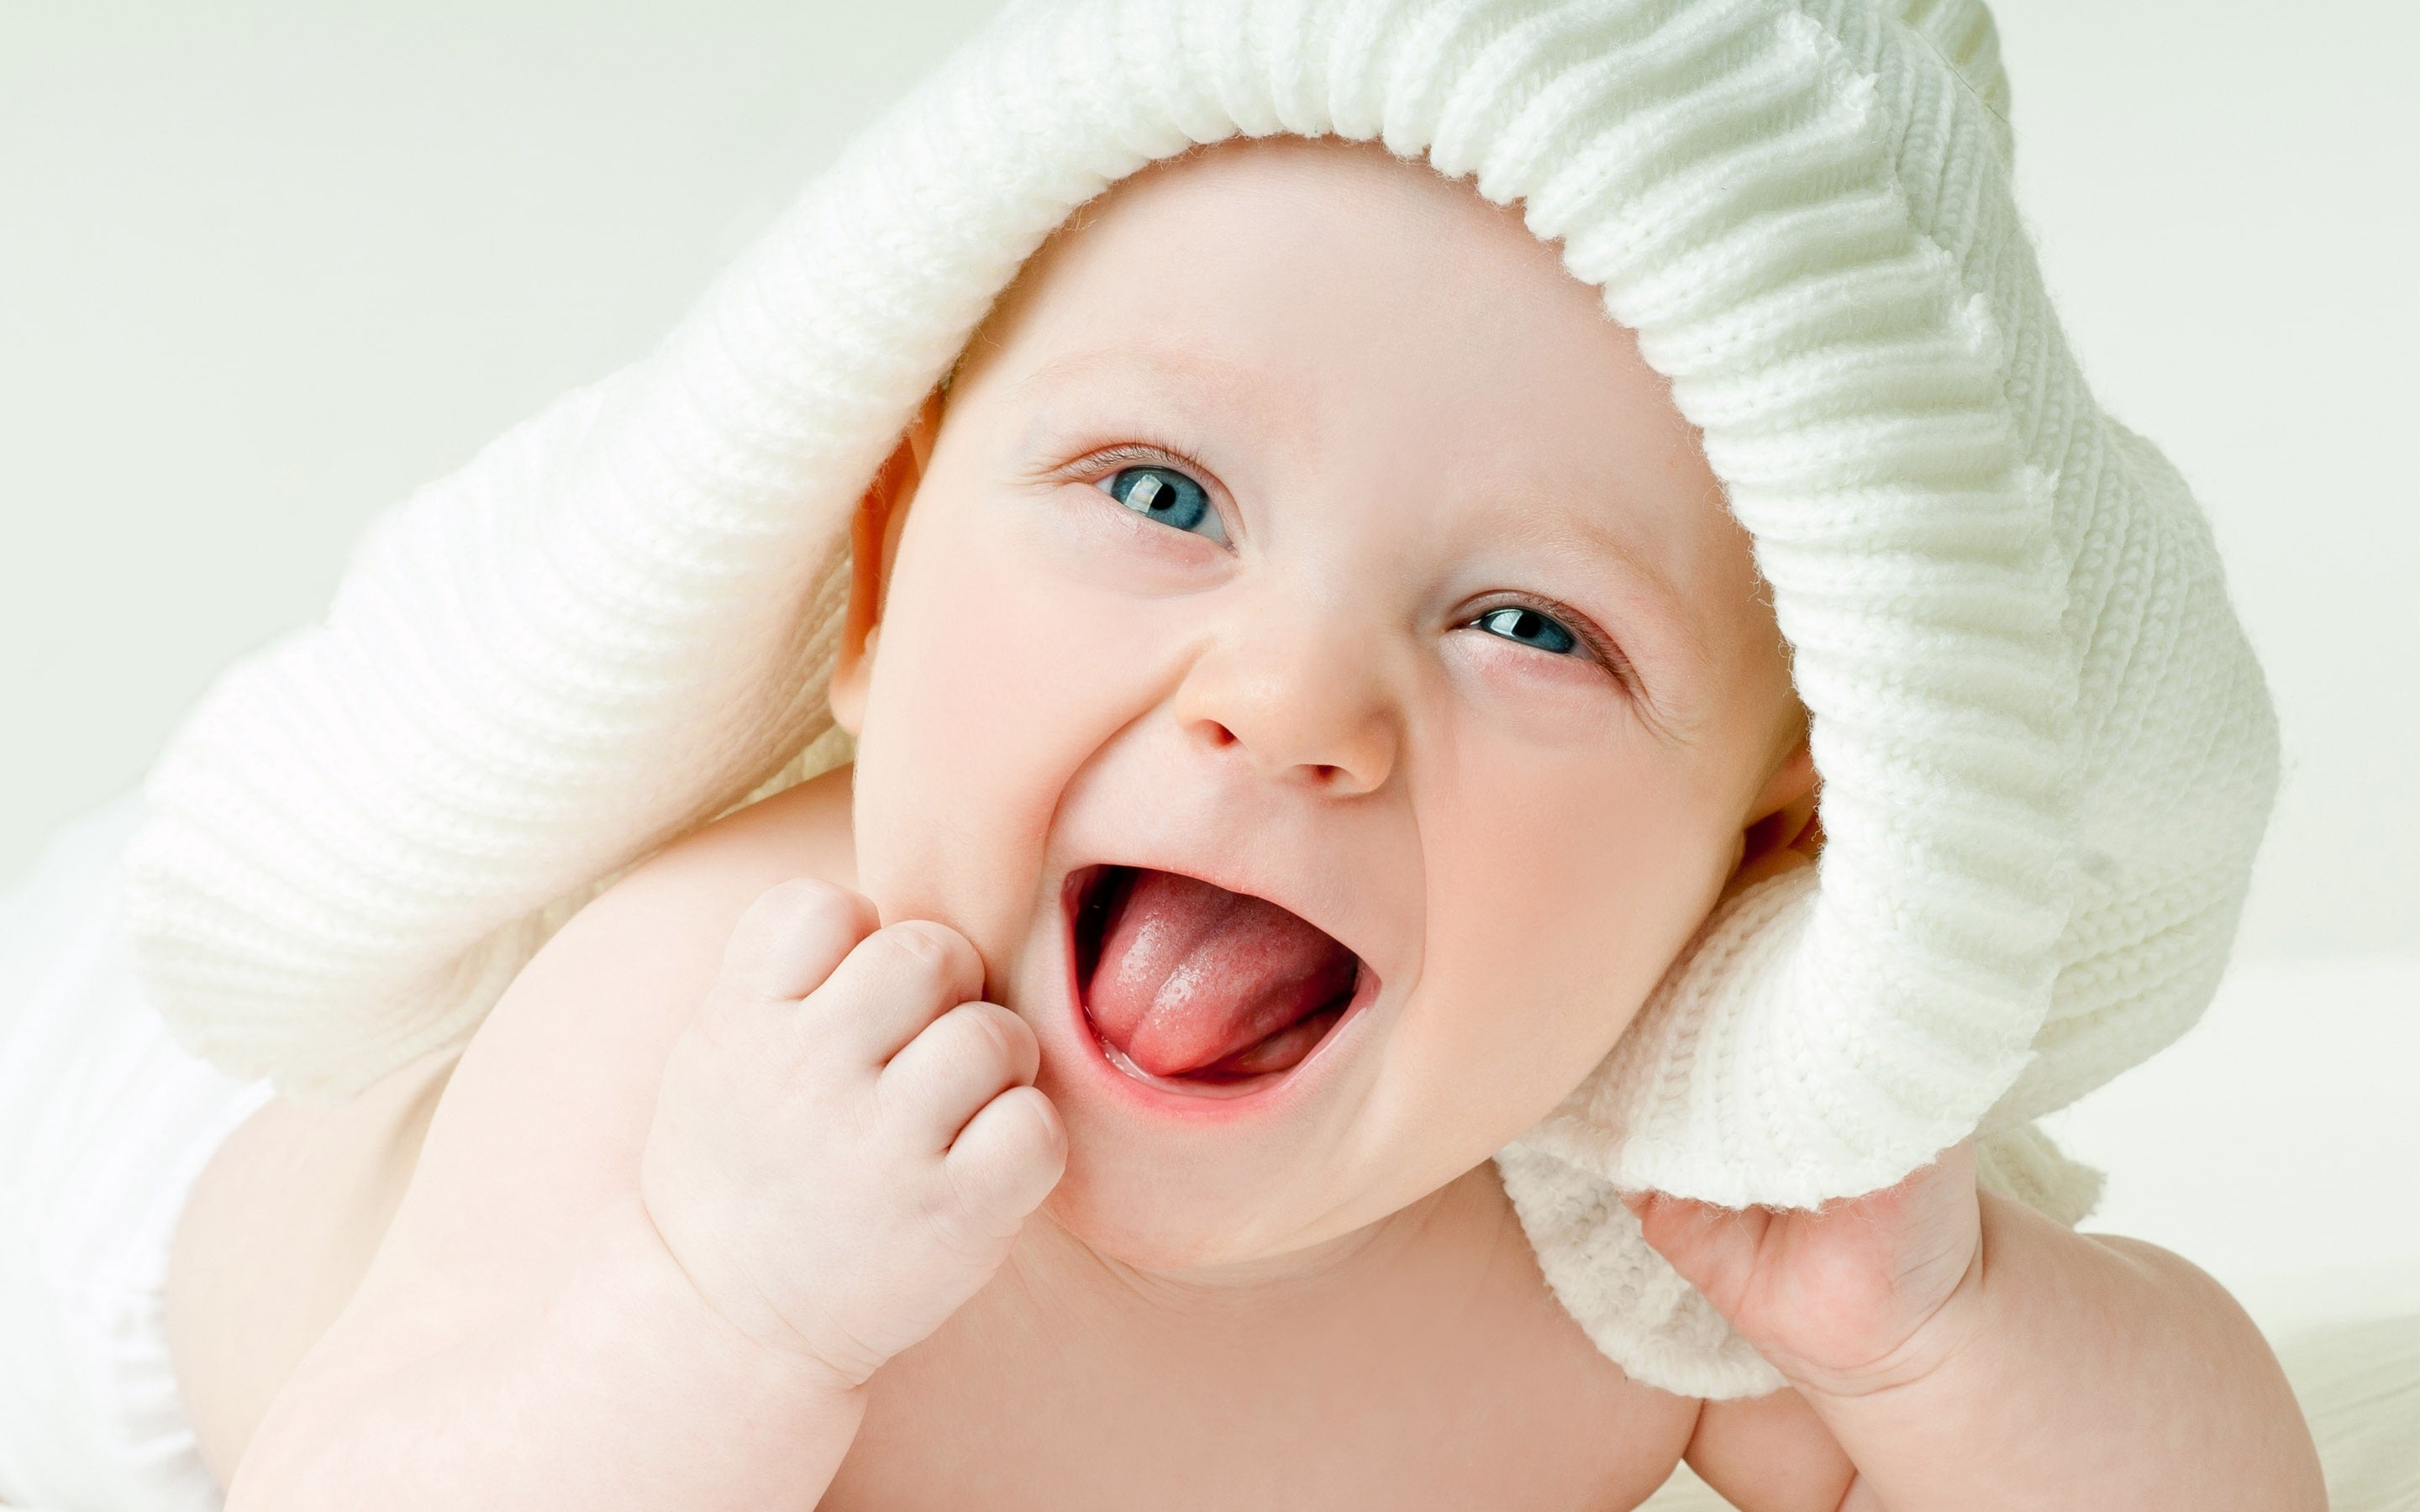 Baby 4k Wallpapers For Your Desktop Or Mobile Screen Free And Easy To Download